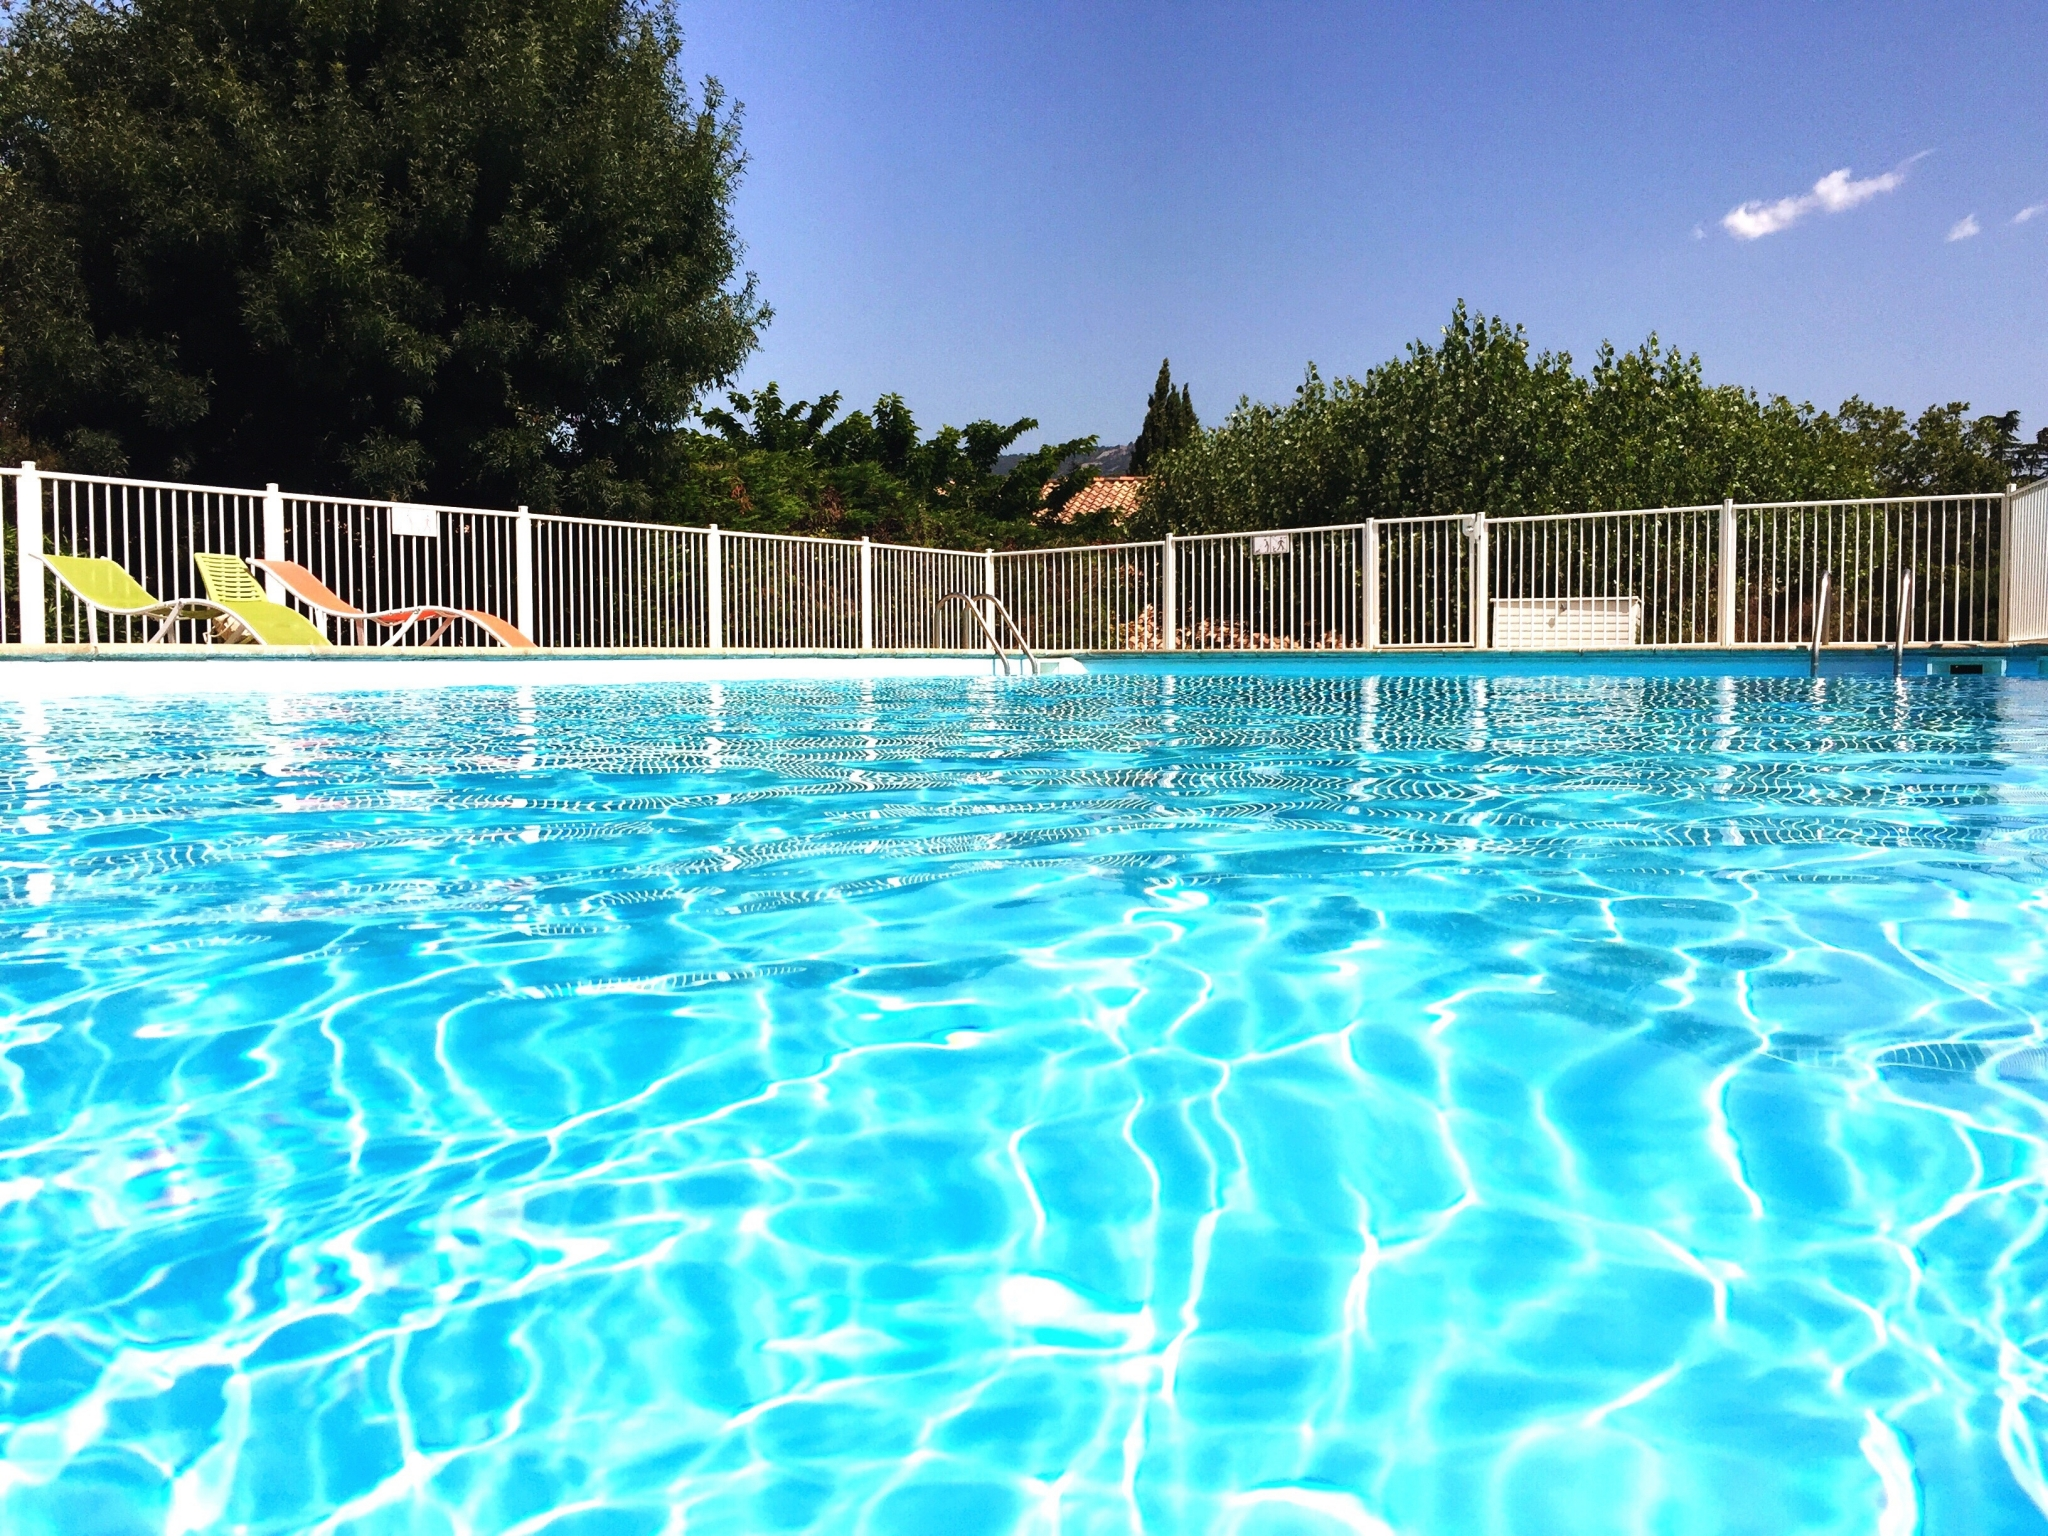 Cdc Says Diarrhea Inducing Parasite On The Rise In Us Pools Houston Chronicle